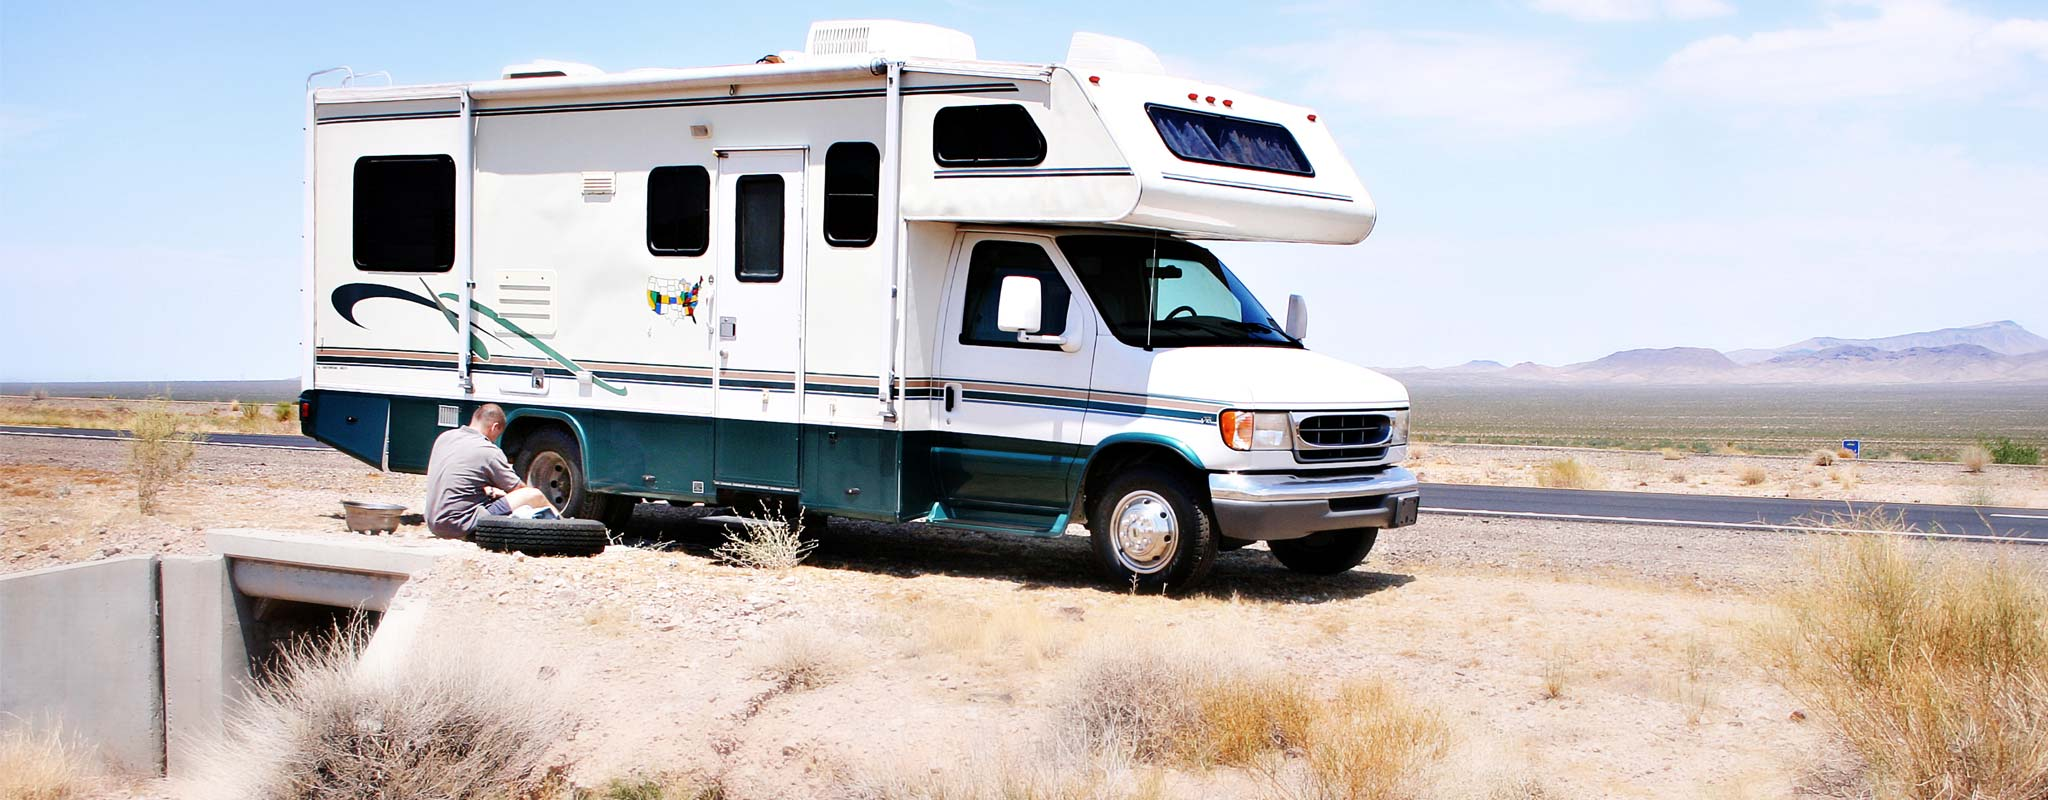 Rv Tires Near Me >> How To Avoid Prepare For A Flat Tire On Your Rv Or Trailer